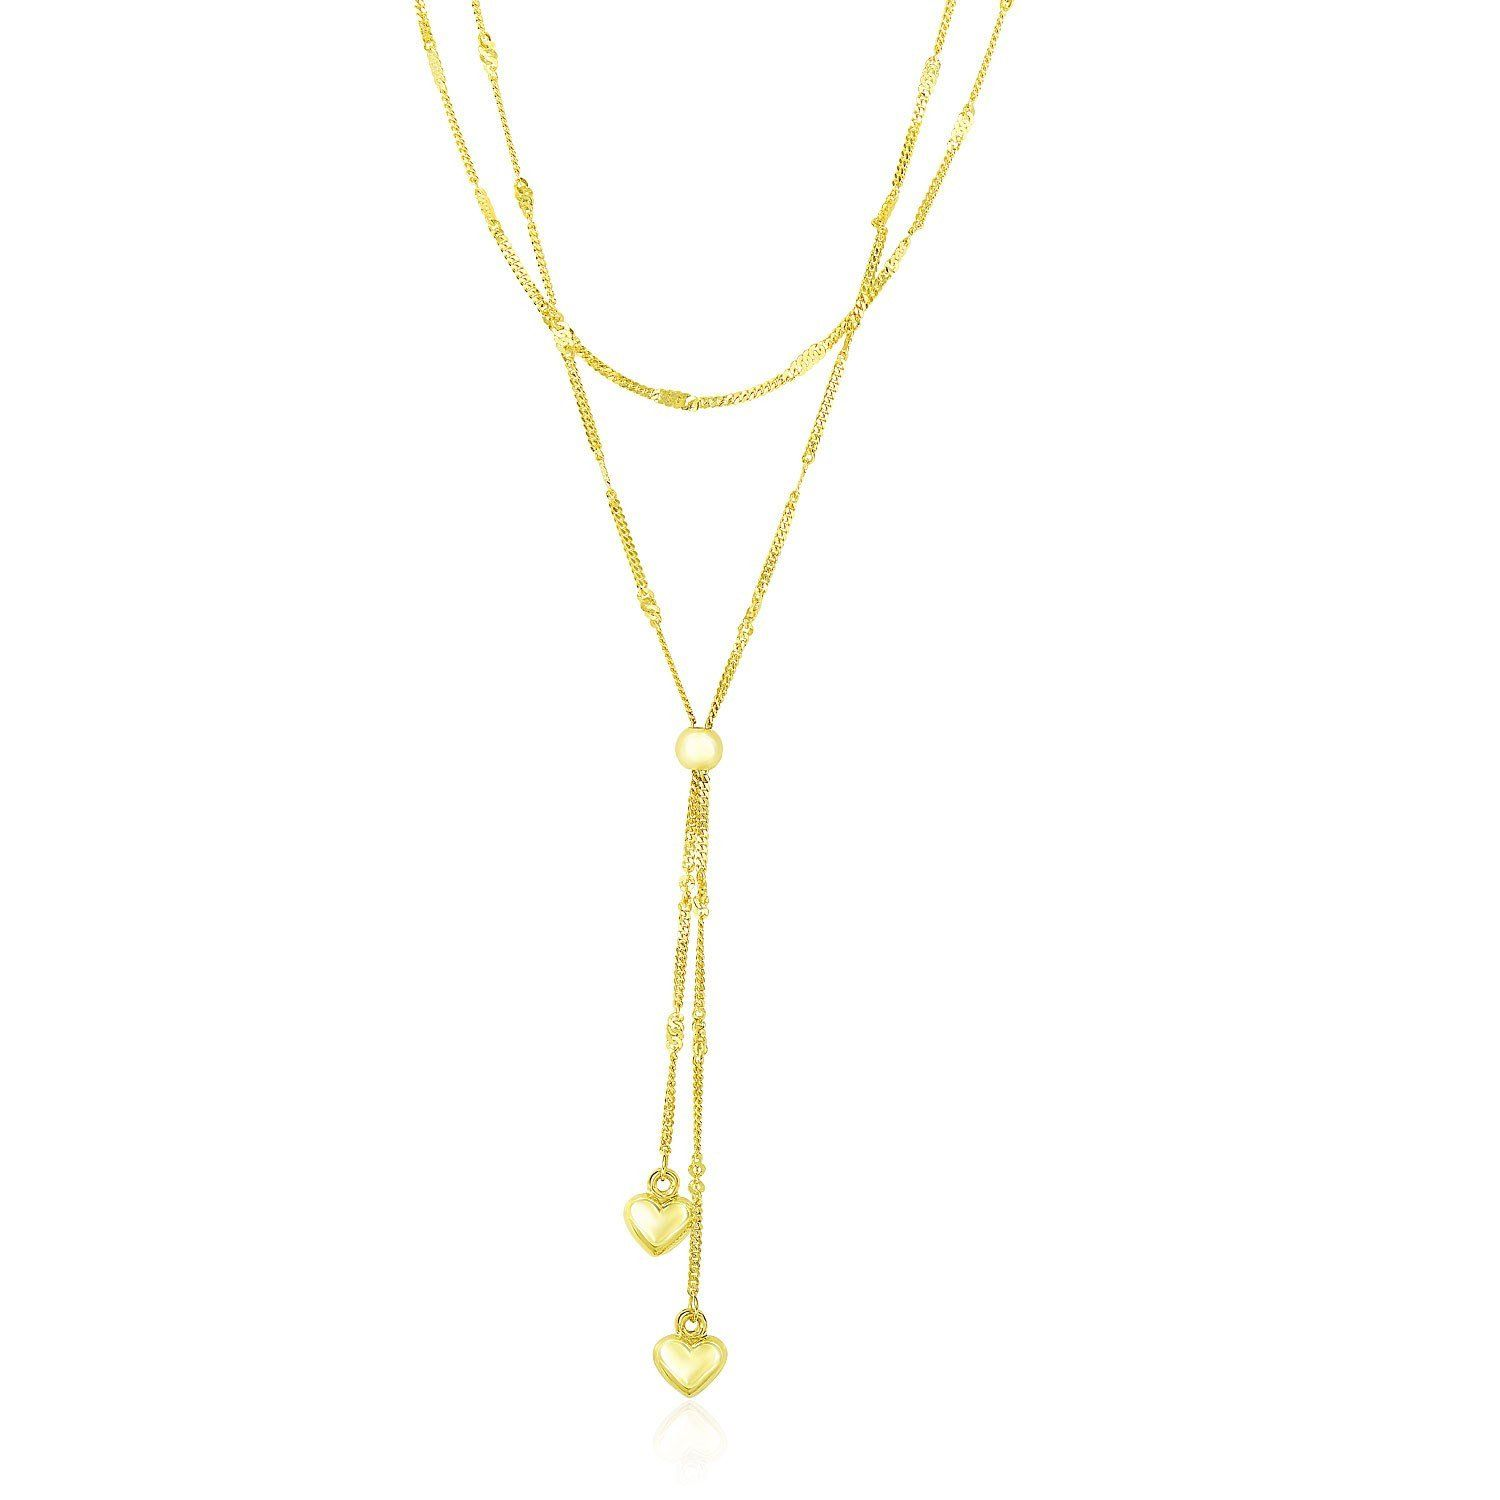 K Yellow Gold Puffed Heart Lariat Double Strand Necklace Strand